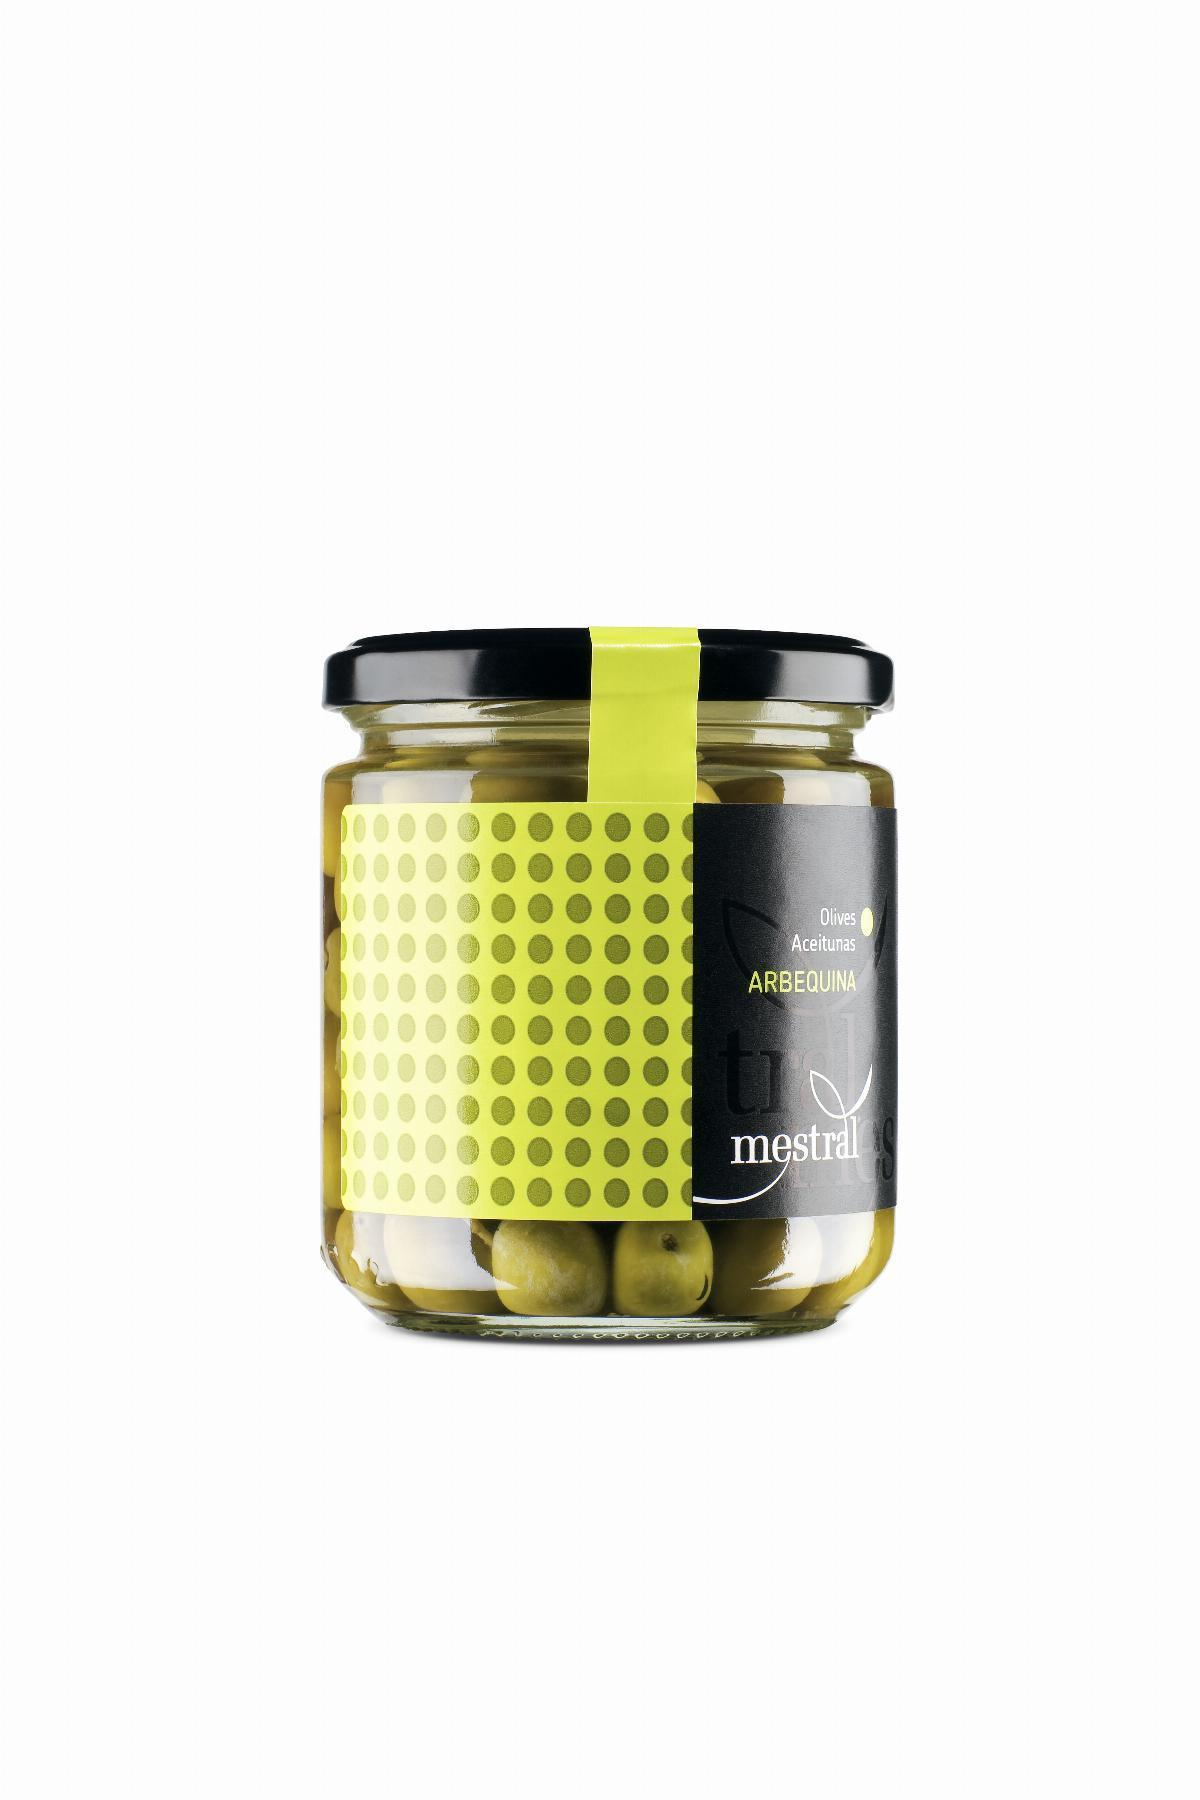 Olives Arbequina Mestral, pot transparent 210g, CAT-ES-EN-FR-DE